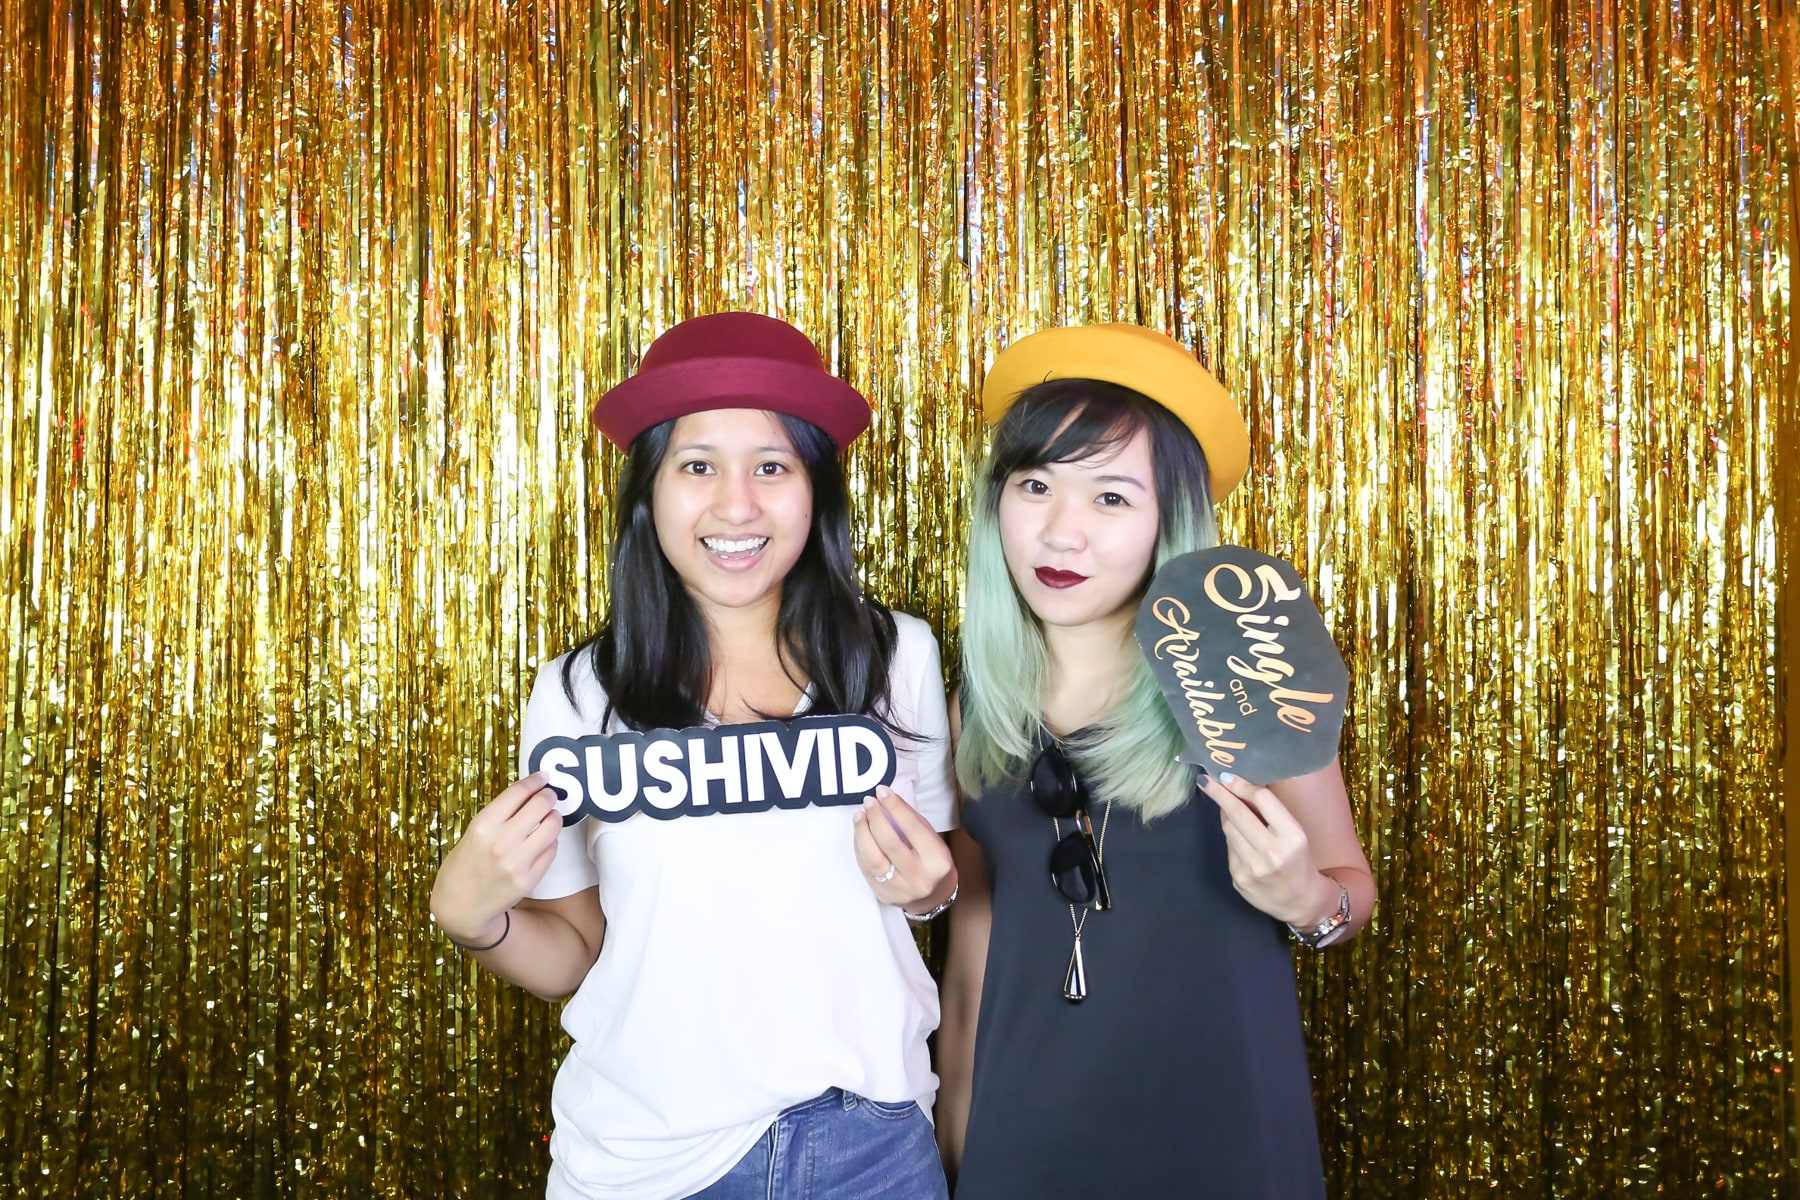 Sushivid+crunch+tagbooth+59